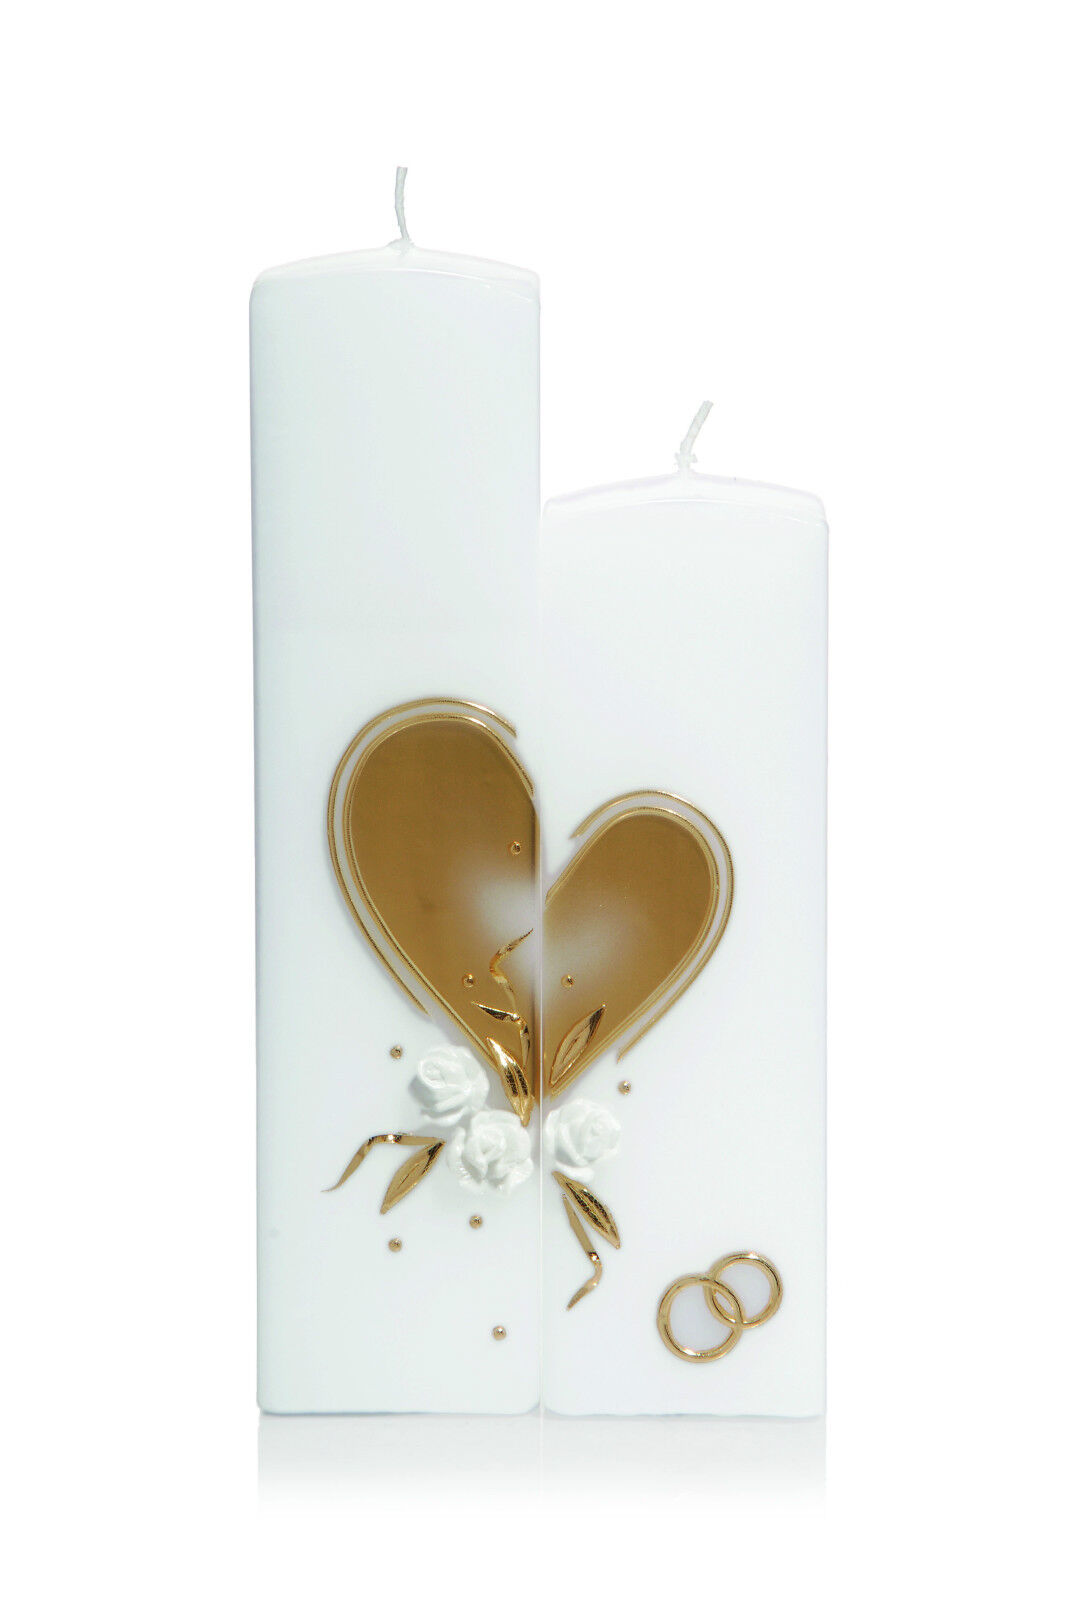 mariage Candle 250x60mm 2 Burner With or Heart + sacues Candle WiedehomHommes